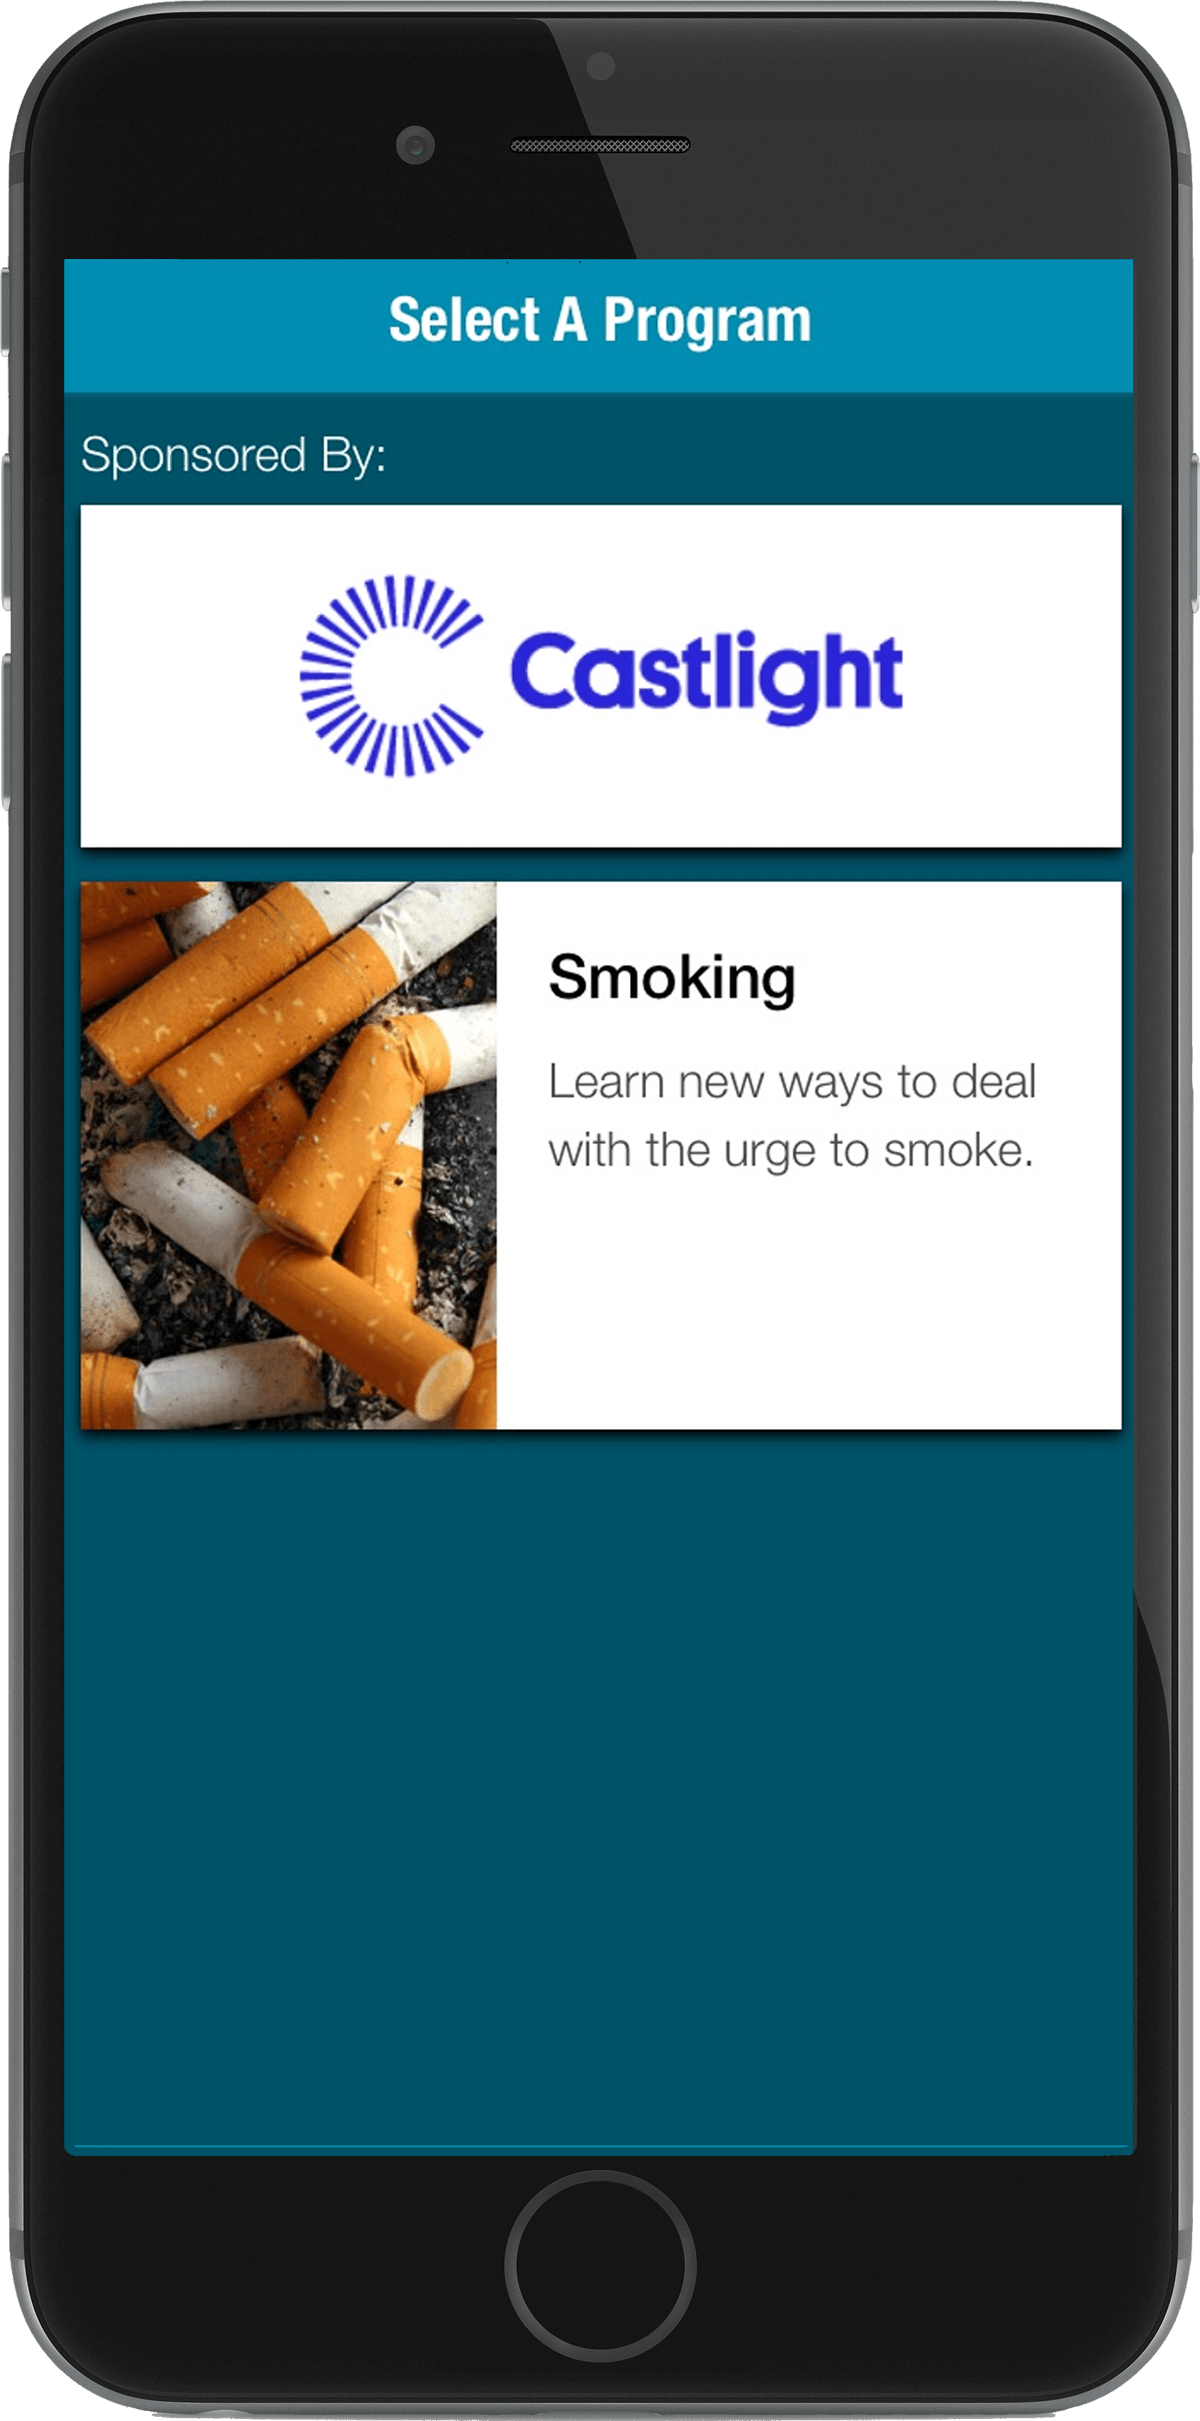 9 Castlight-2MH-Cobrand_Pick a program - Smoking.png